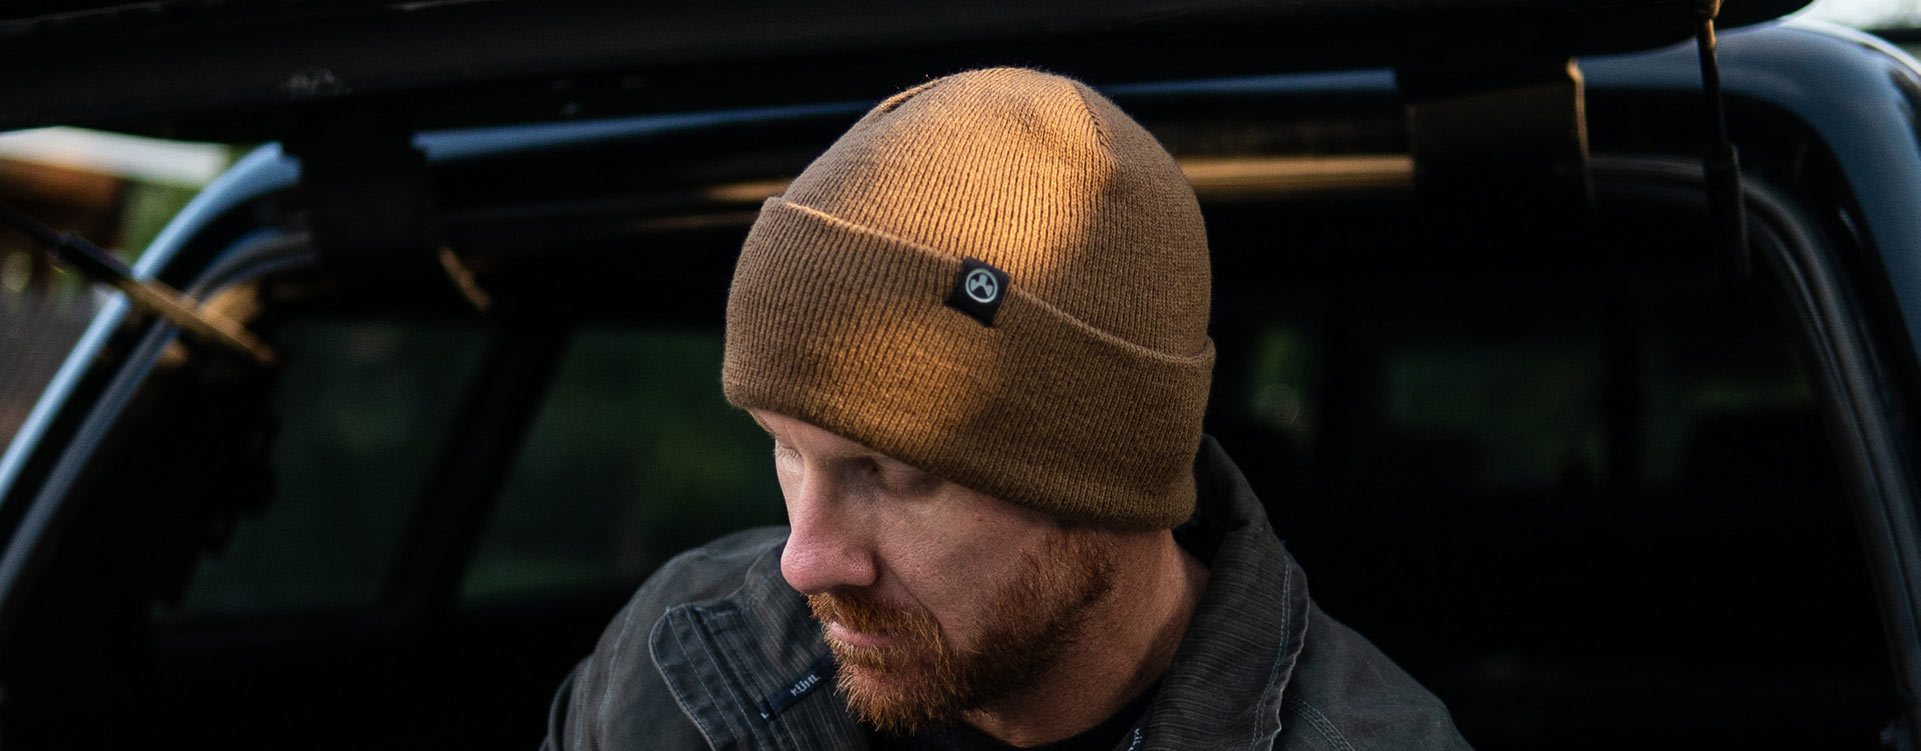 3.Brown Magpul Watch Cap with black, logoed tag over edge of cuff worn by bearded man sitting in back of hatchback looking down